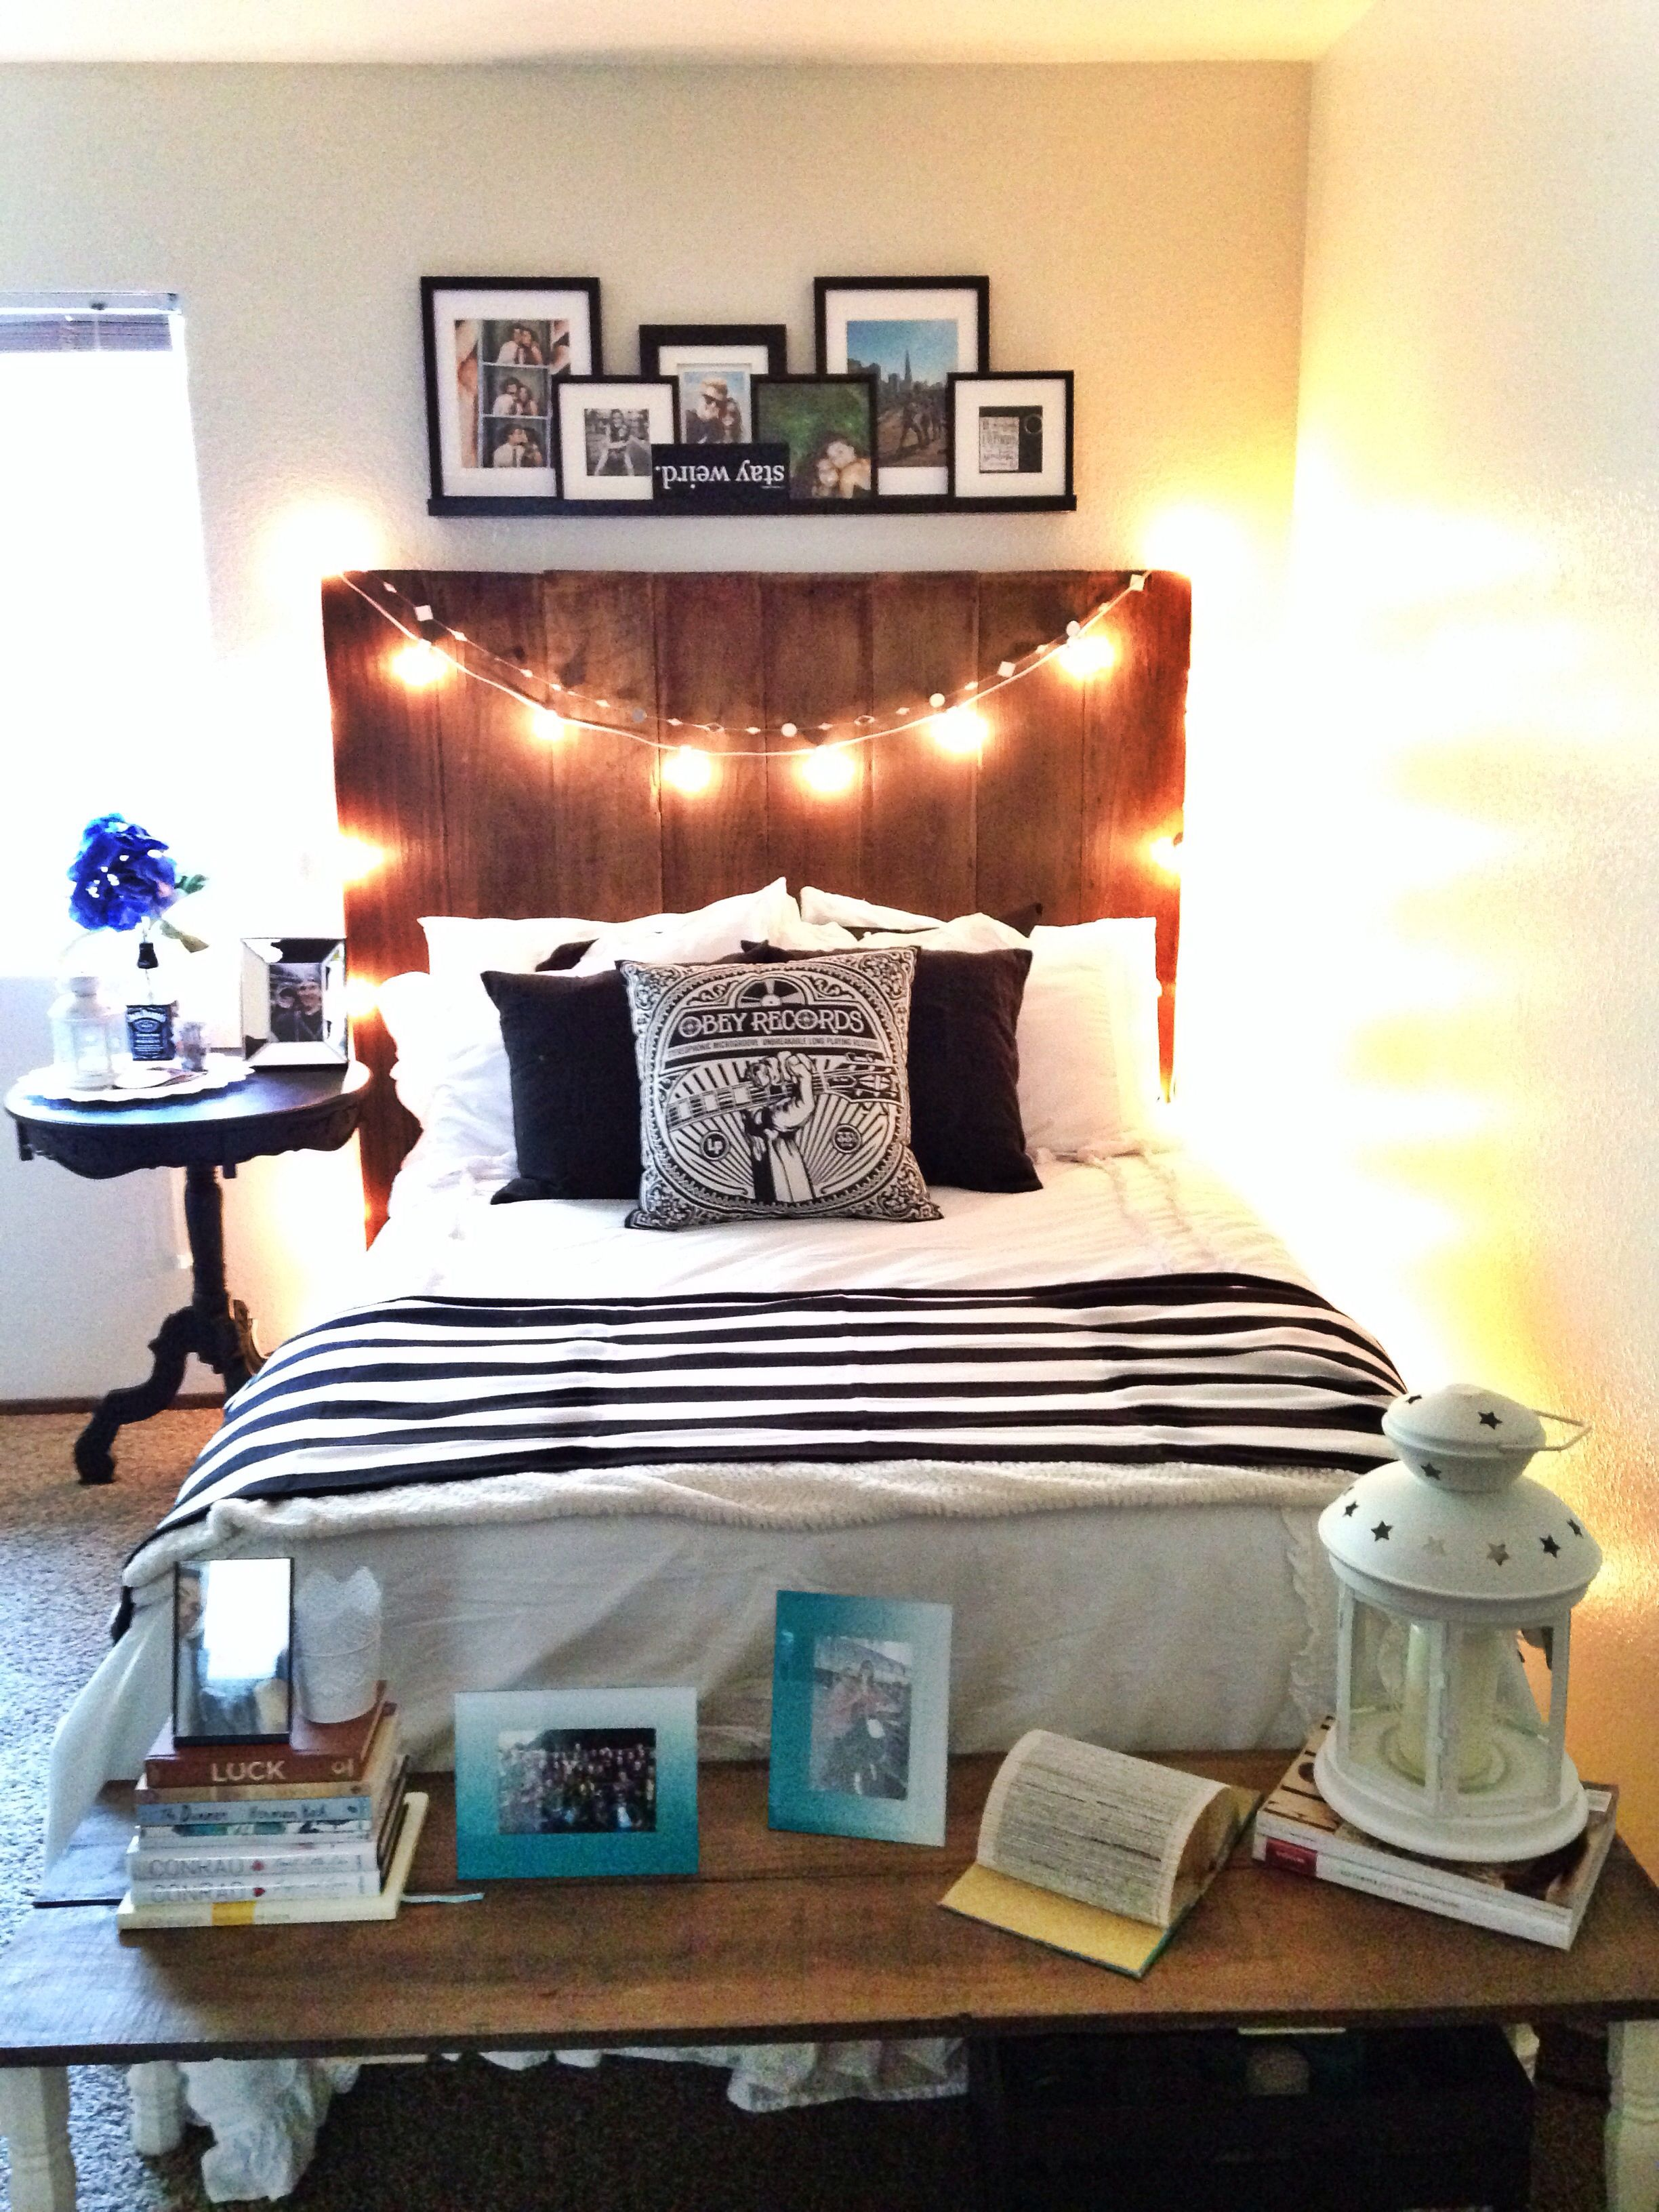 Diy Home Decorating Interior Design Idea: Bedroom For First Apartment. DIY Headboard & Bench Made